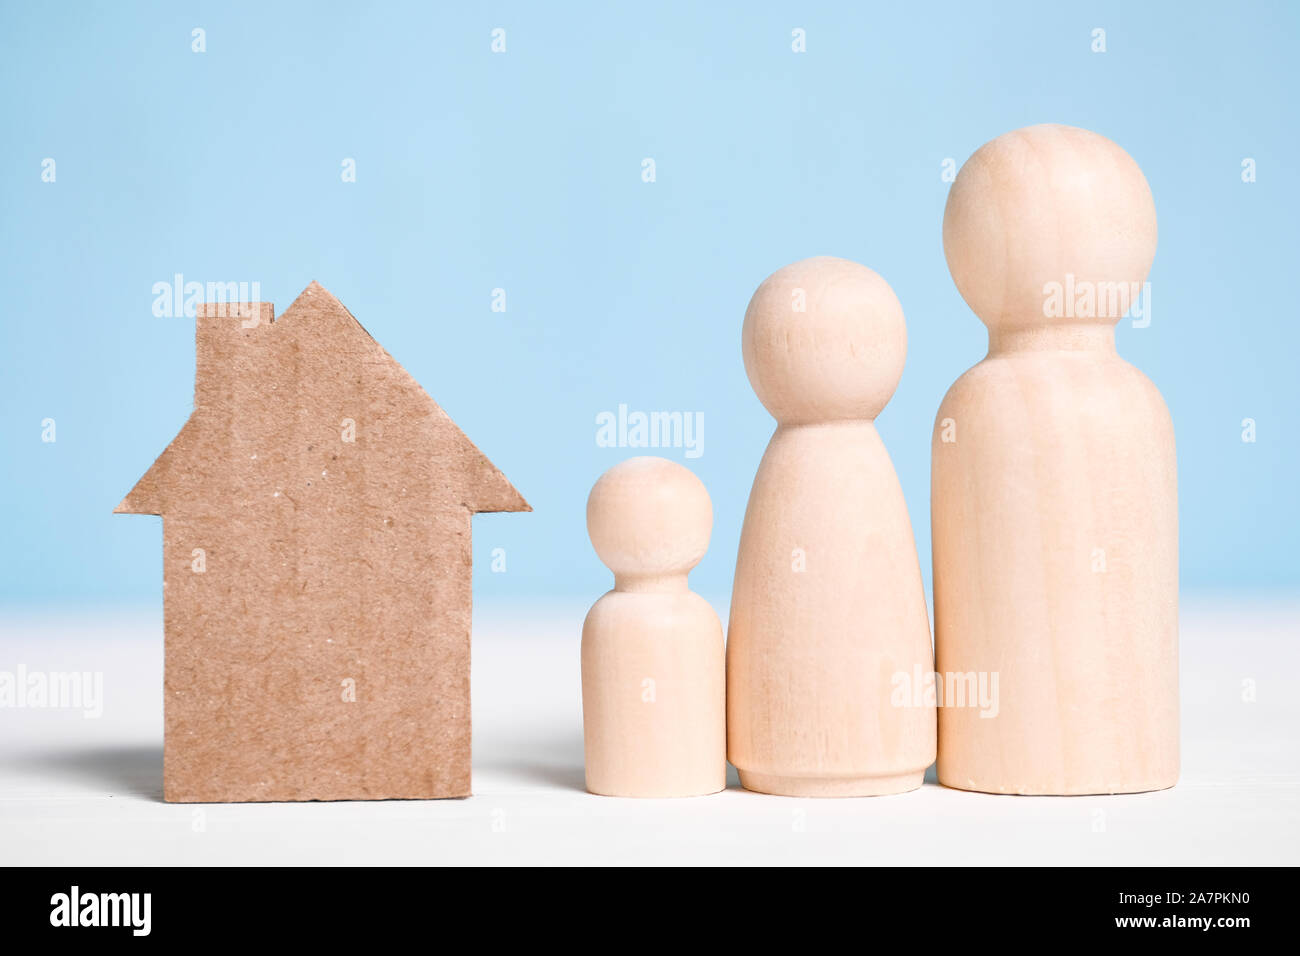 Wooden figures family with cardboard cutout house on blue background. Concept of moving to new home, settlement, rental, mortgage, eviction. Stock Photo